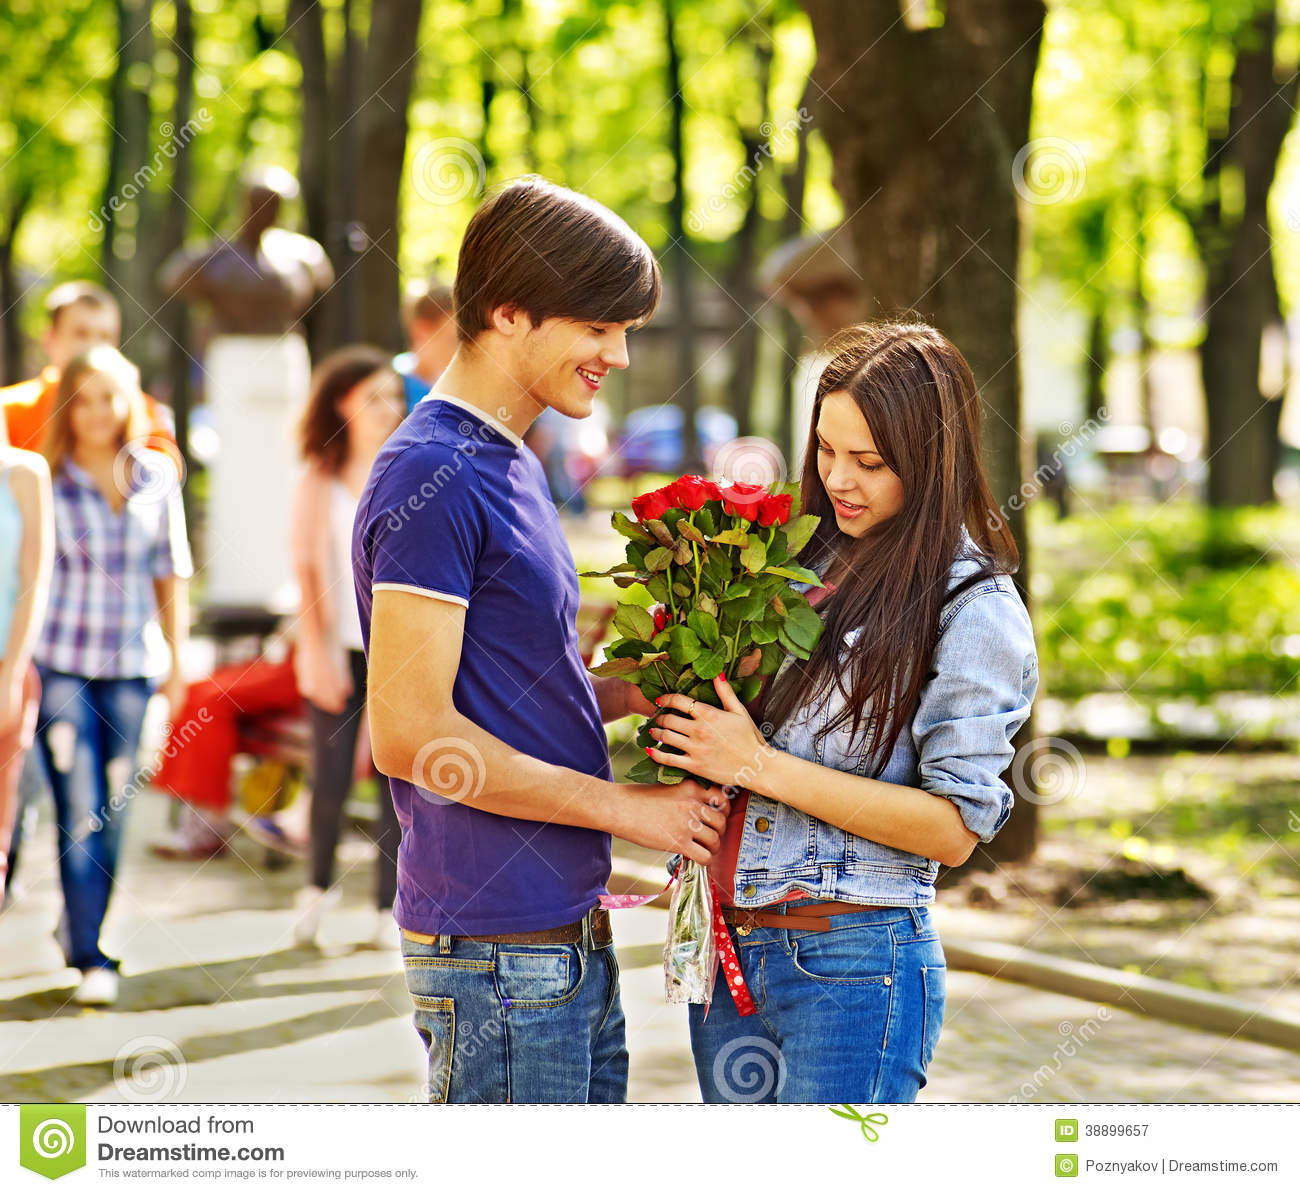 Couple Of People On Date Outdoor. Stock Image - Image of